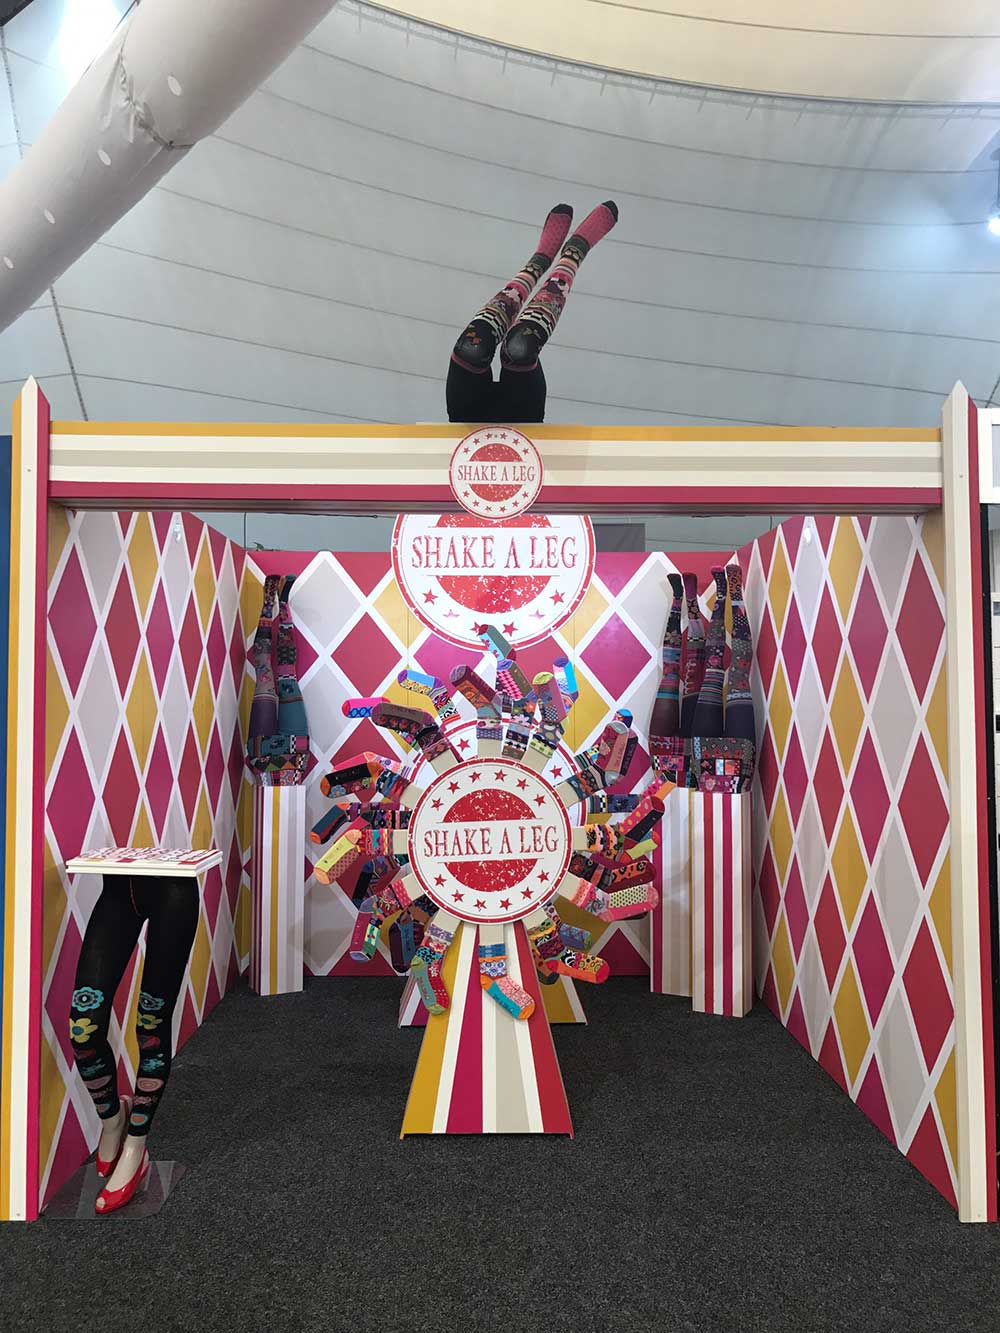 The Showoff Person, Trade show display